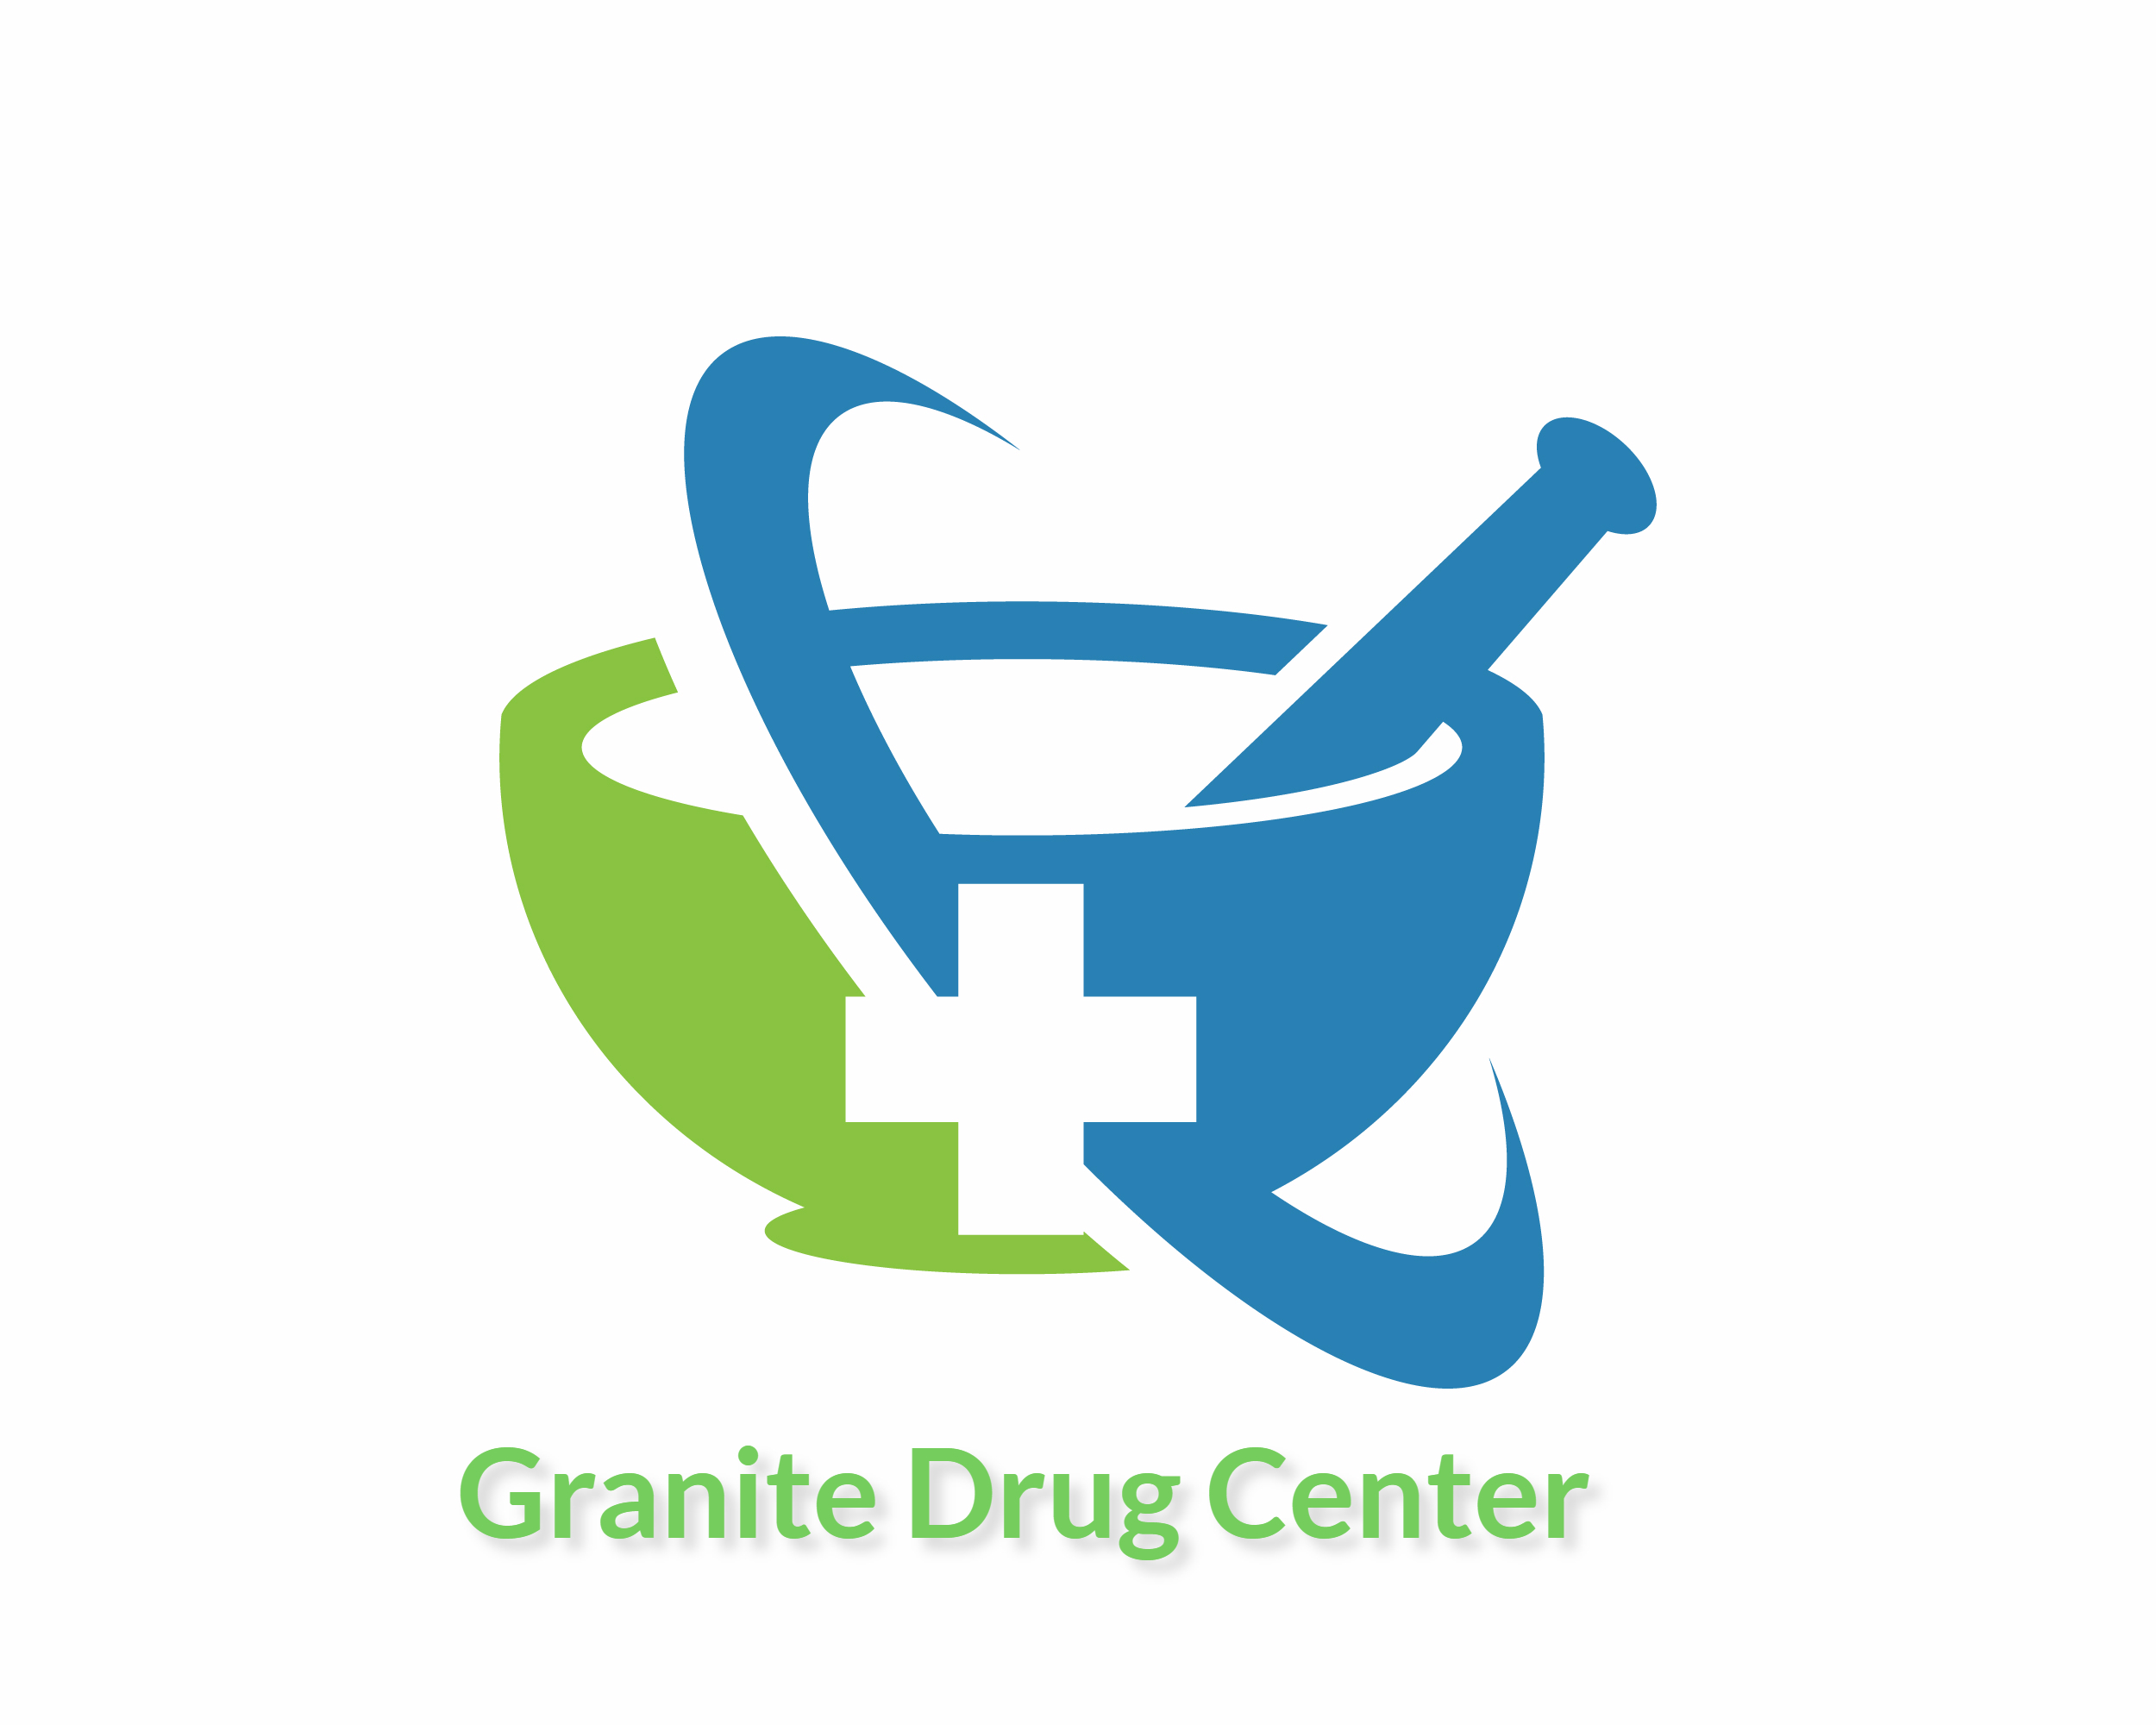 New - Granite Drug Center